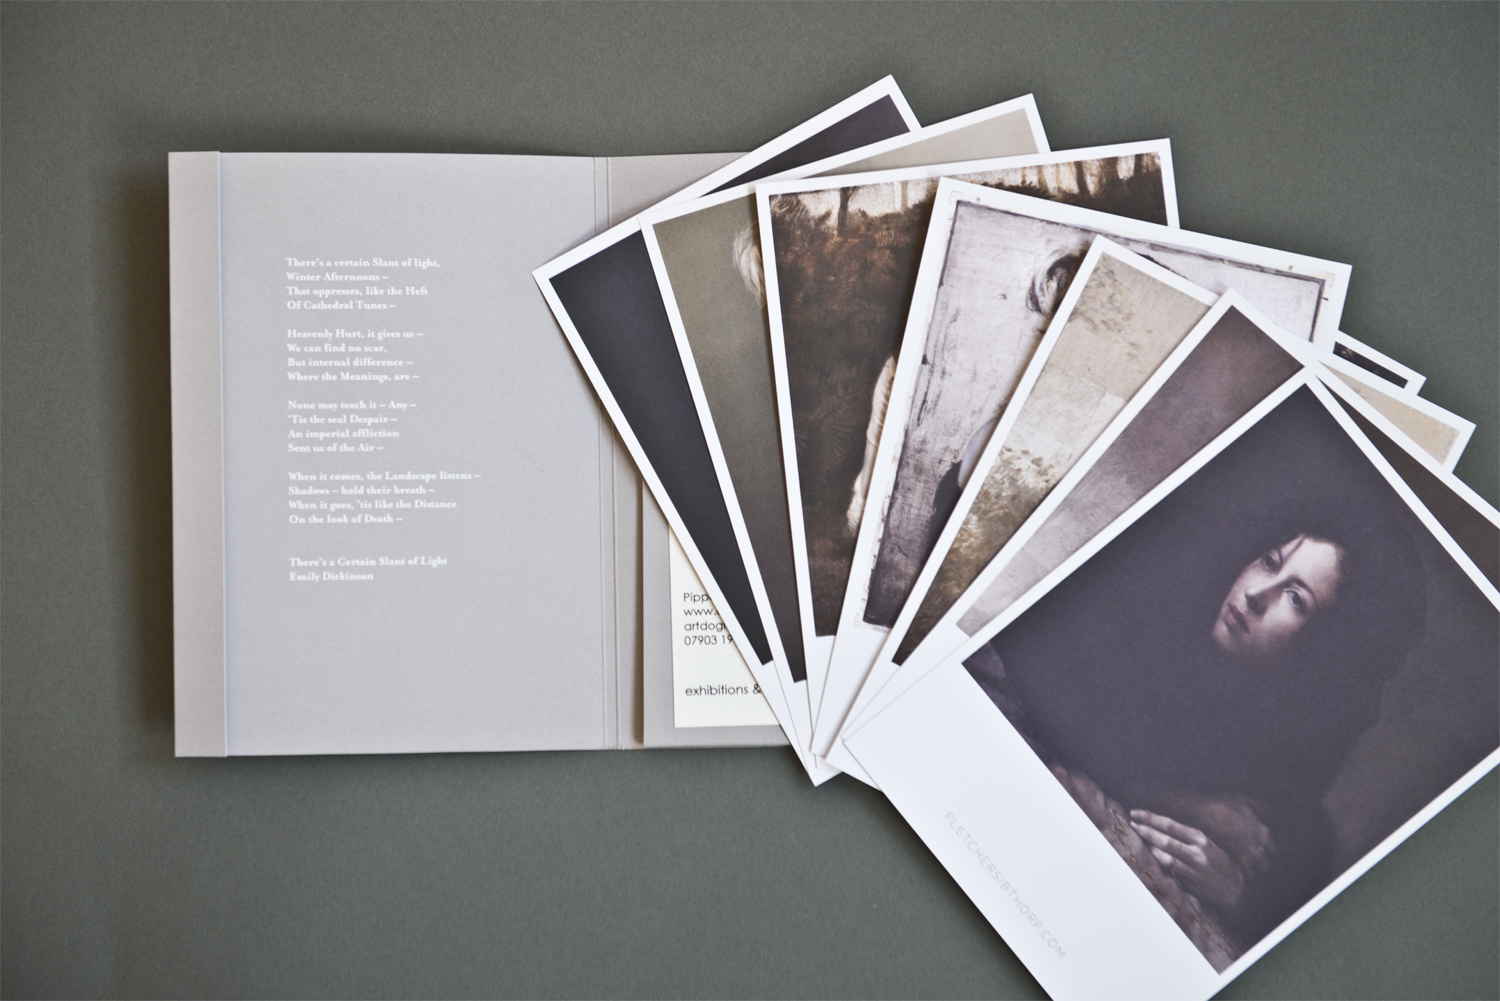 The seven beautiful matte finish postcards are themselves a sort of mini-exhibition. There are enough to get a sense of Sibthorp's style and versatility and each one feels precious. The folder itself has a faux-brushed texture that alludes to the textures in his work.